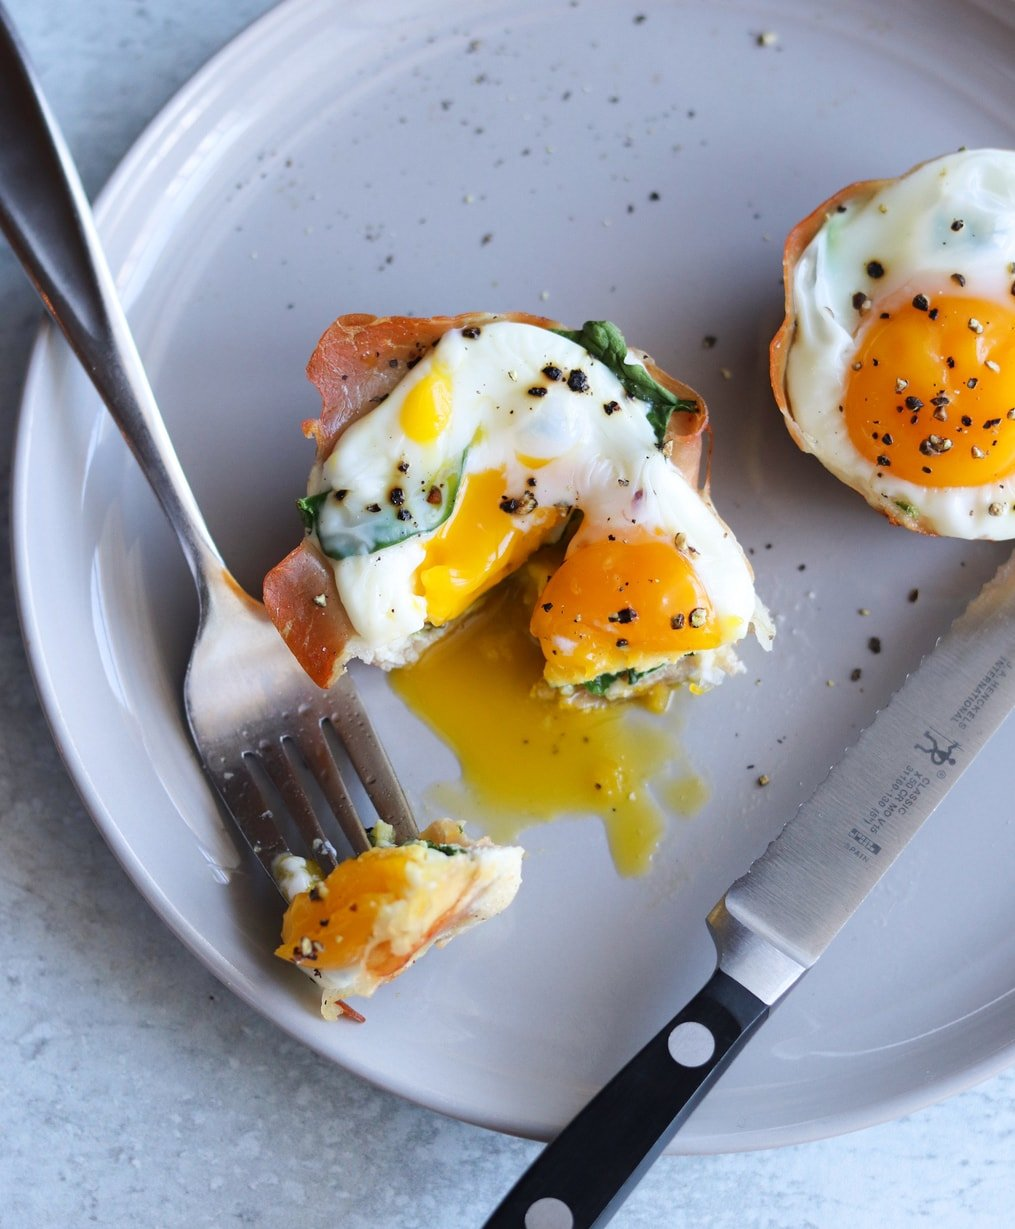 Plated prosciutto egg cups on a gray plate, with a fork and knife cutting into one and some of the runny yolk spilling out.